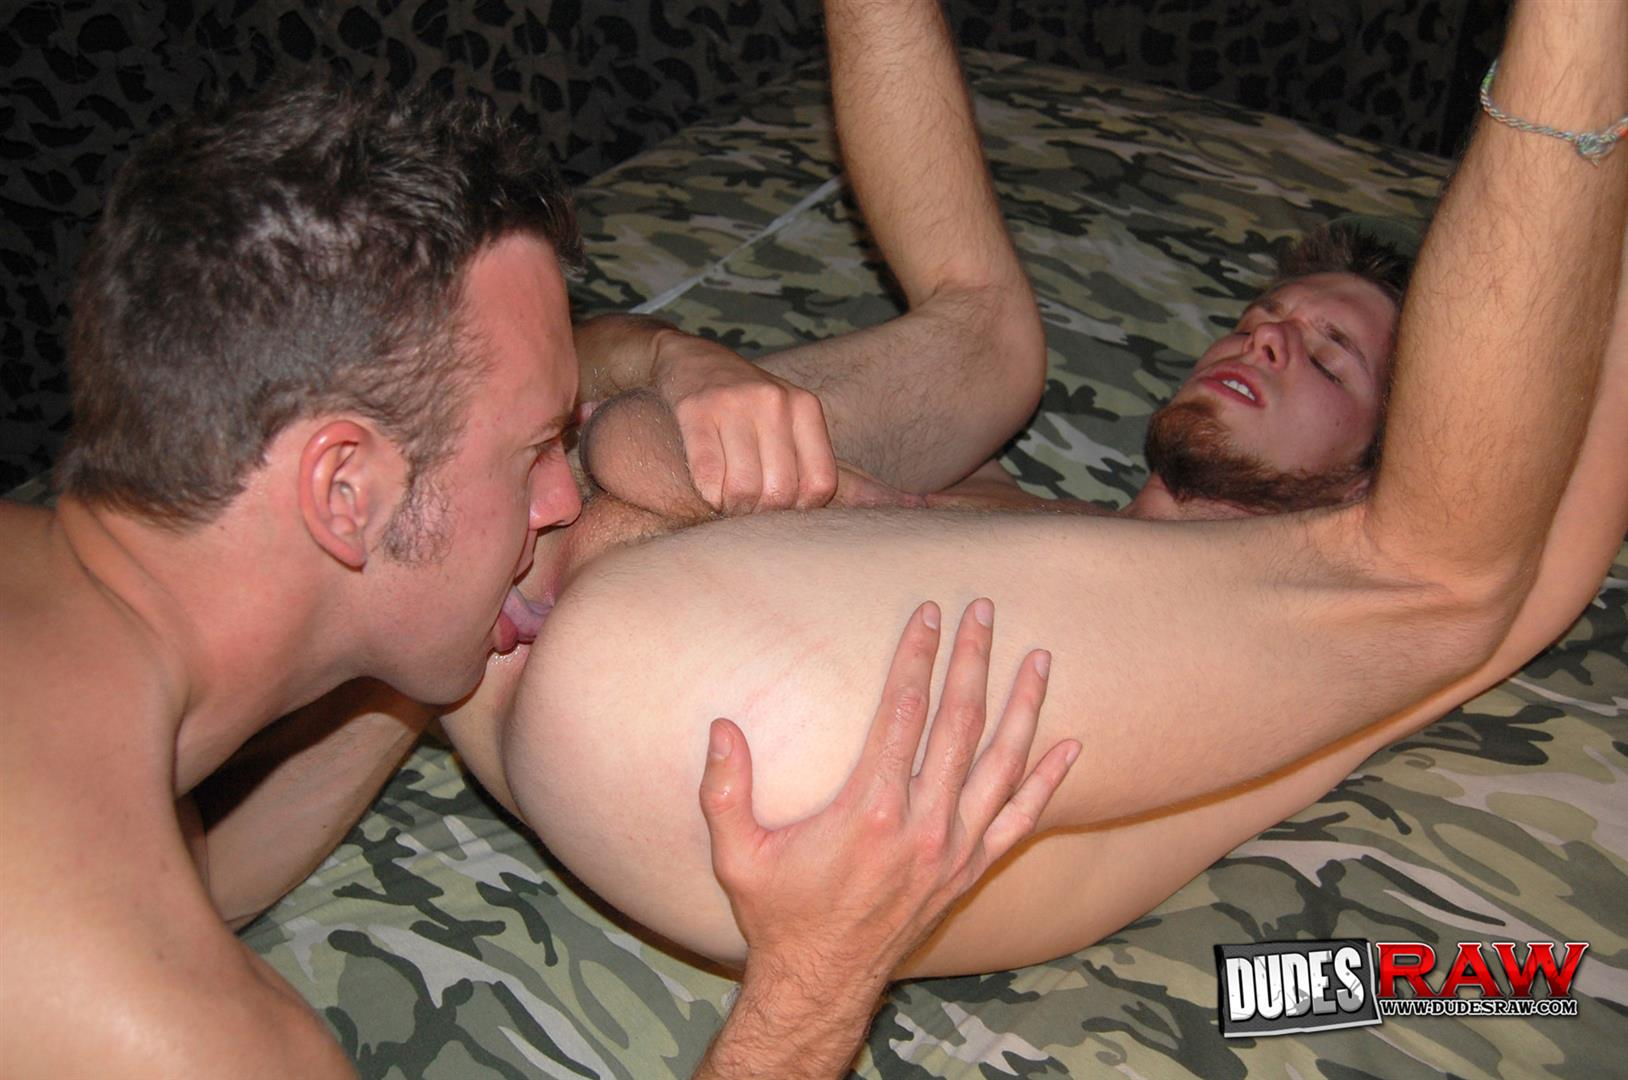 interracial smooth gay